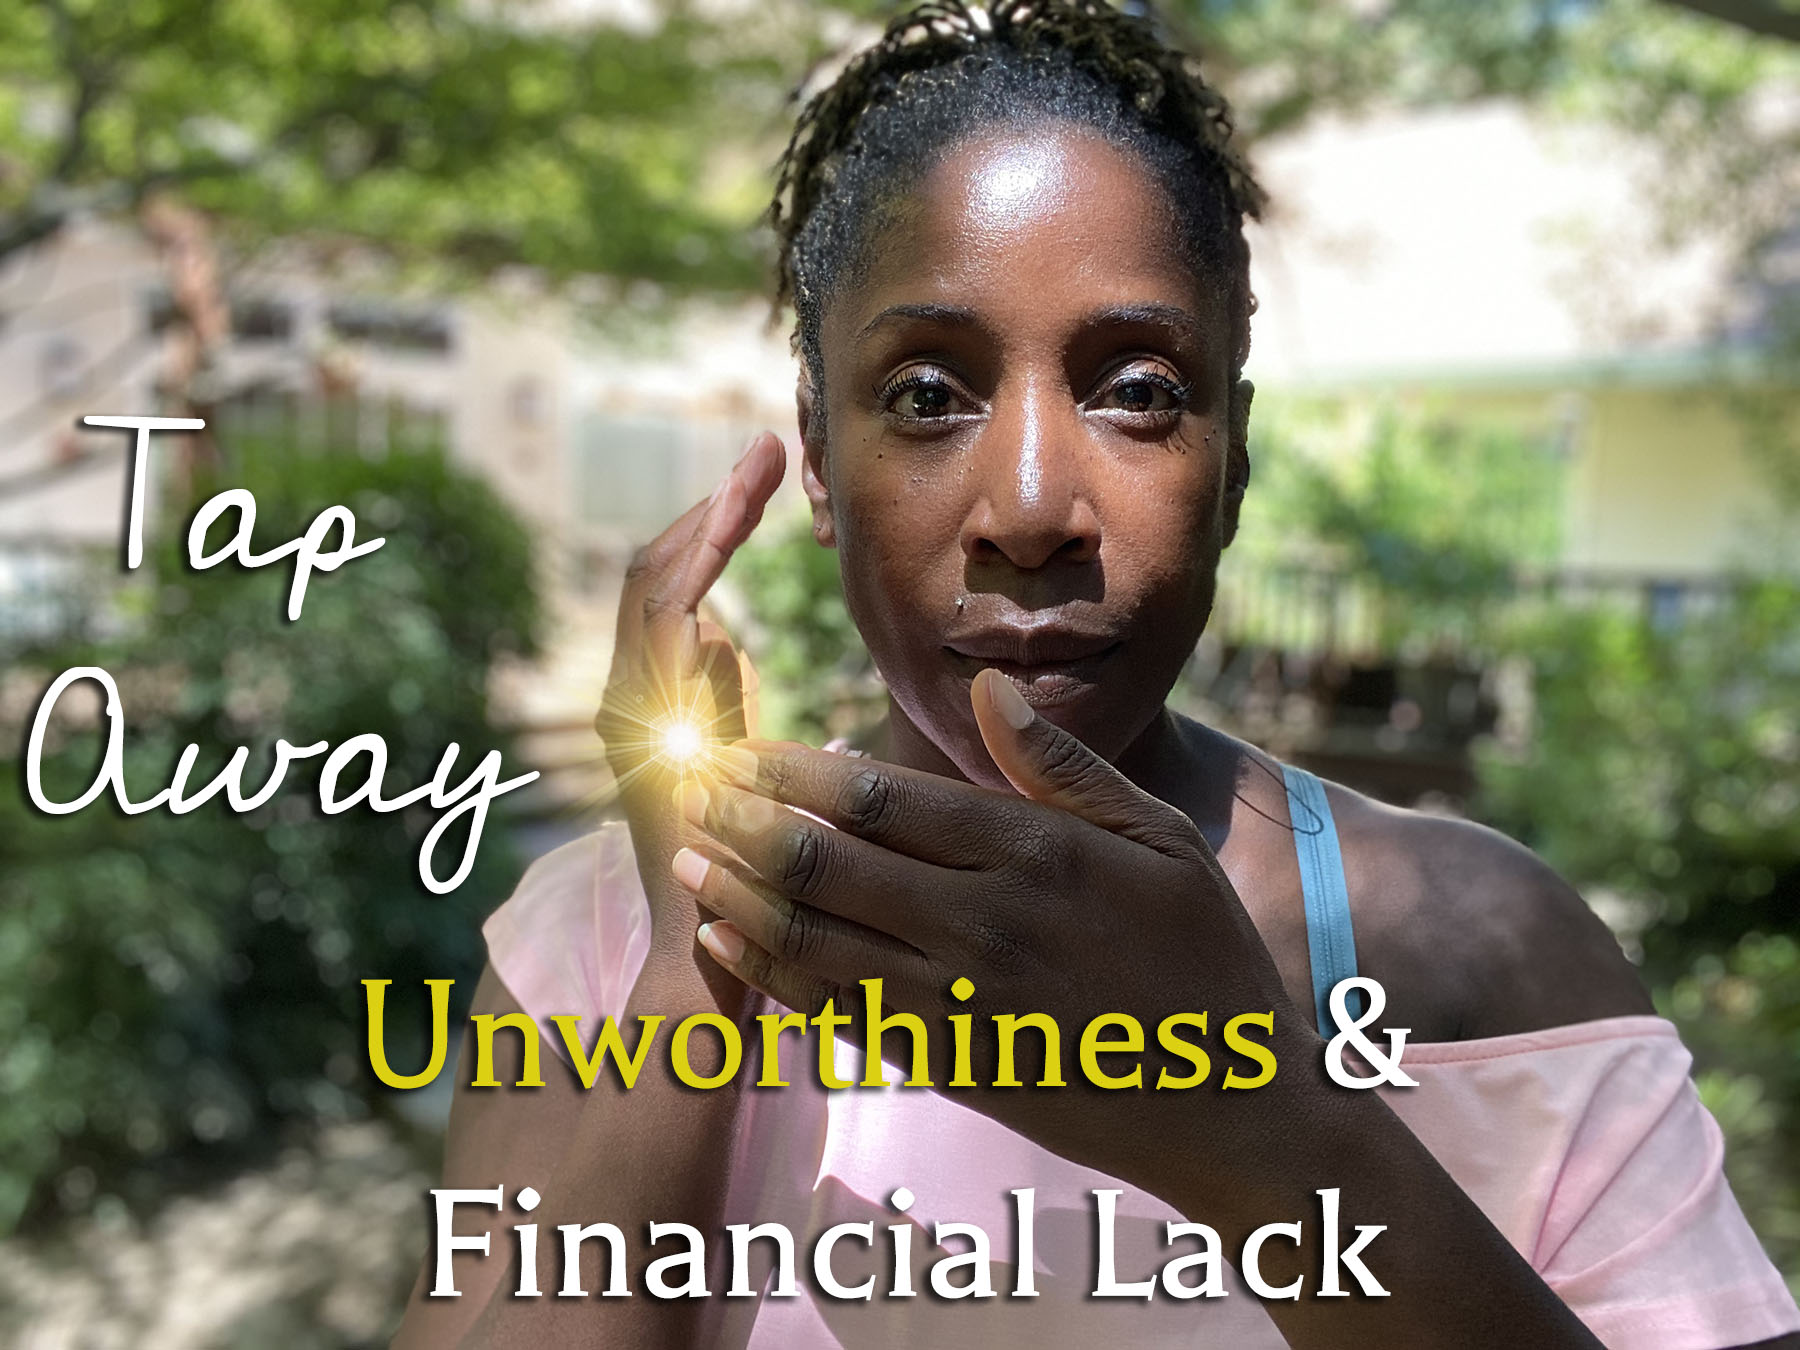 Crystal Lynn Blog Image Tap Away Unworthiness Tap Hand Shining Light